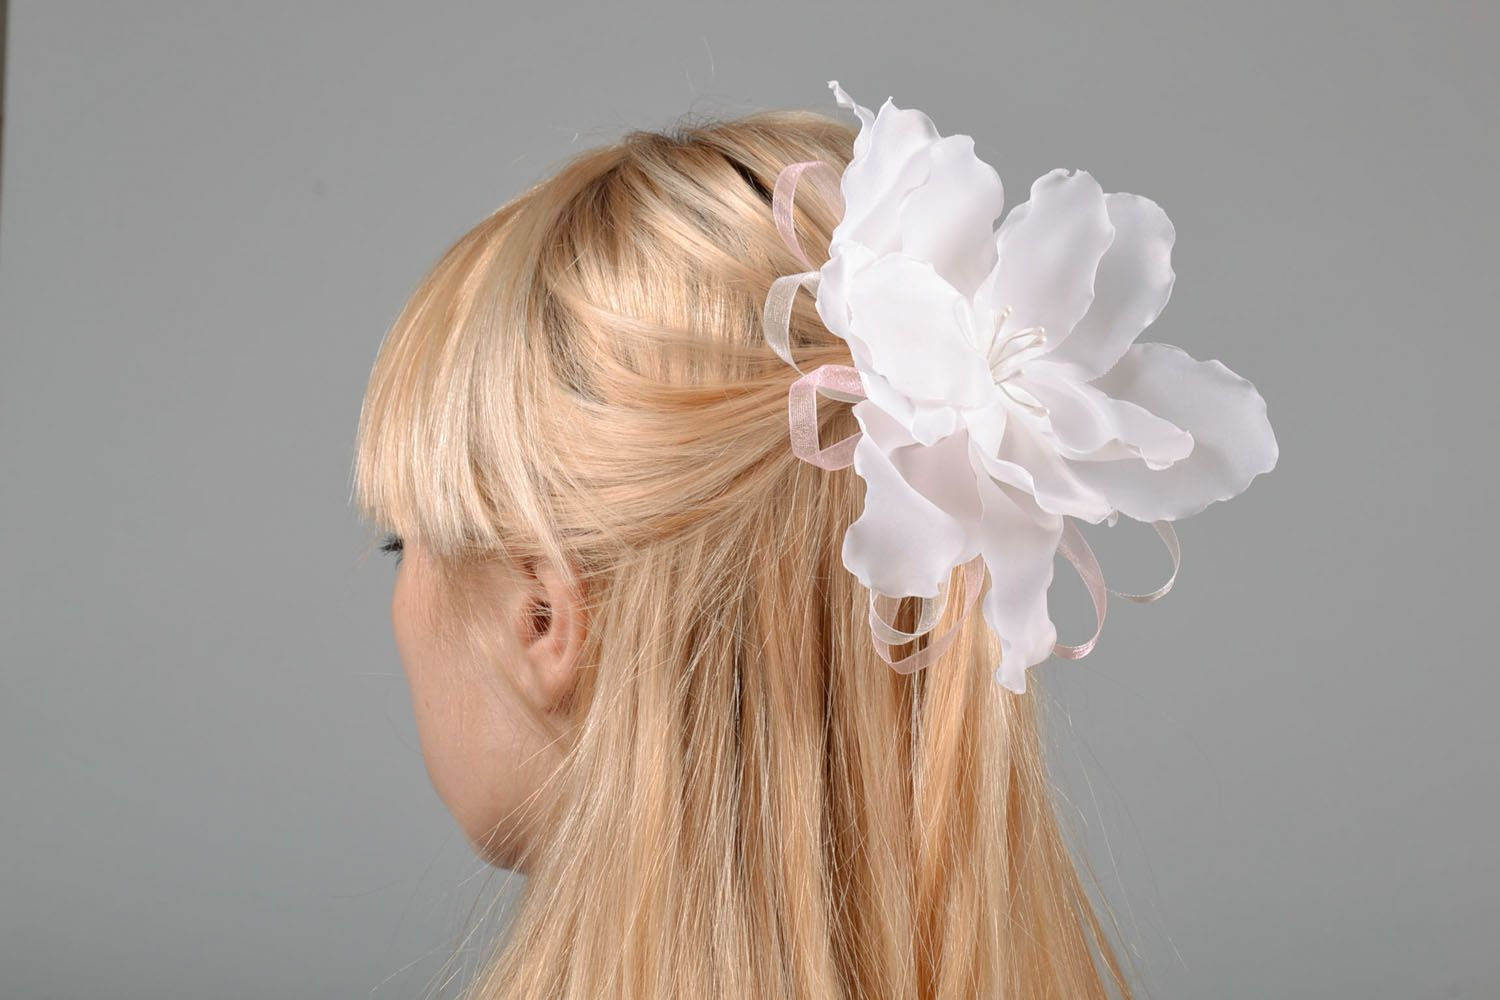 Flower hair clip made of satin ribbons photo 1